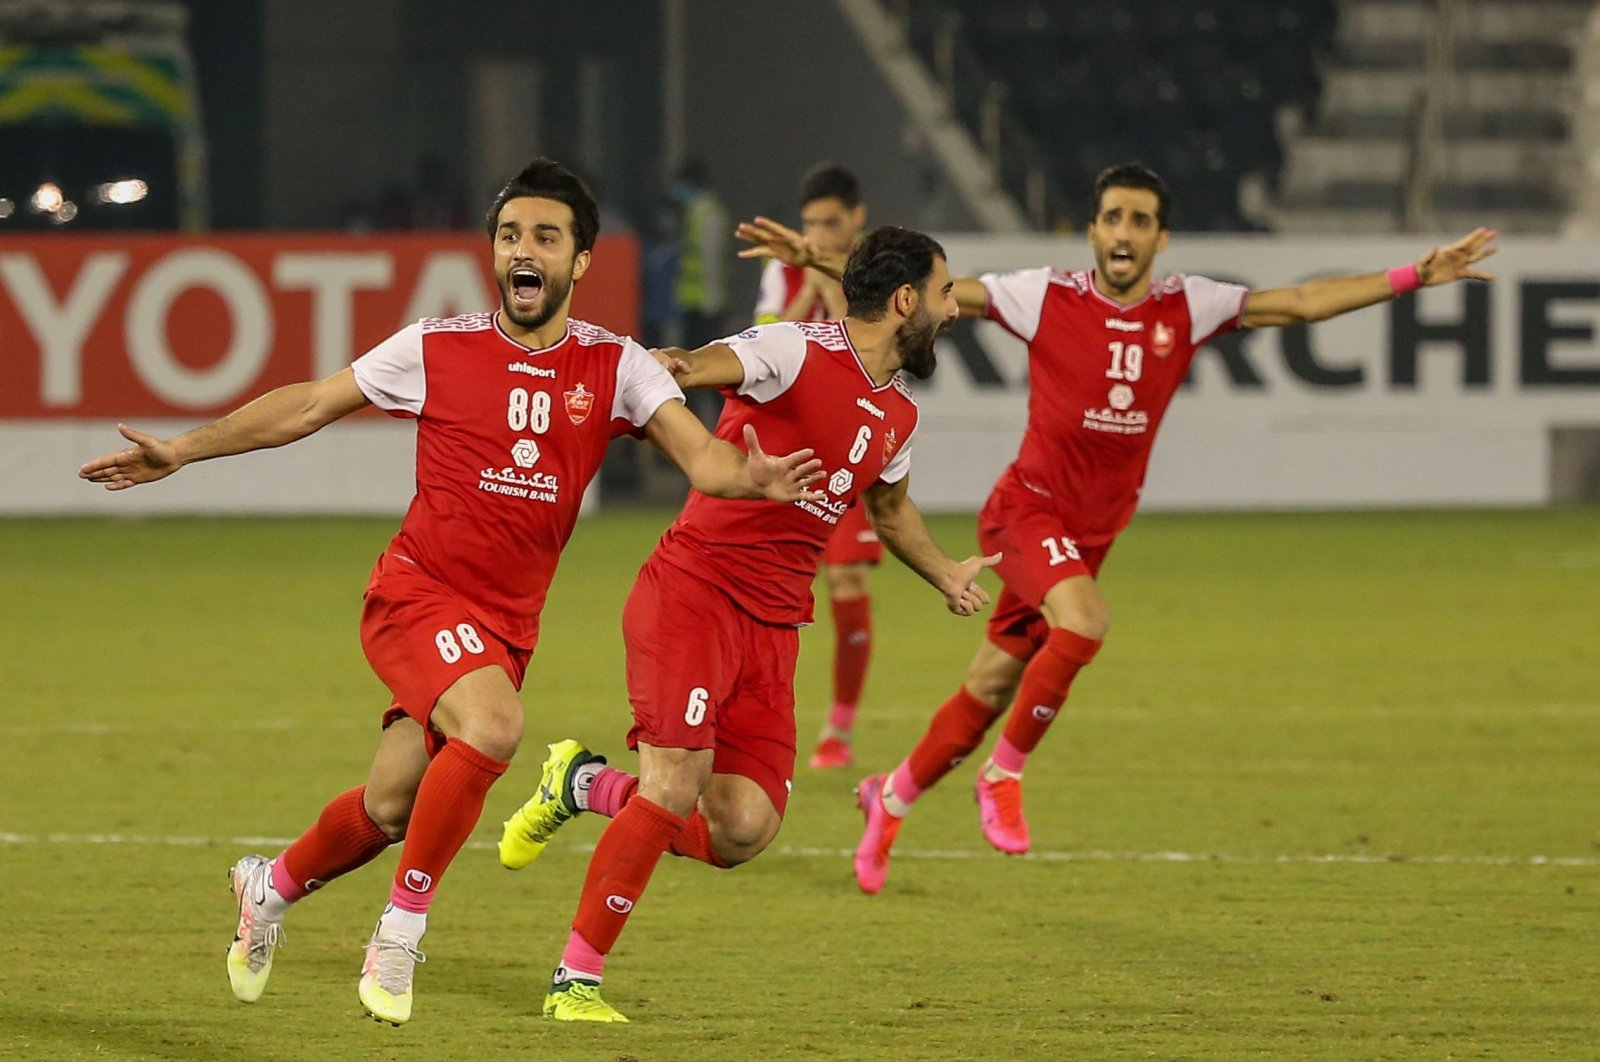 Persepolis players celebrate winning an AFC Champions League match against Al-Nassr, in Doha, Qatar, Oct. 3, 2020. (AFP Photo)